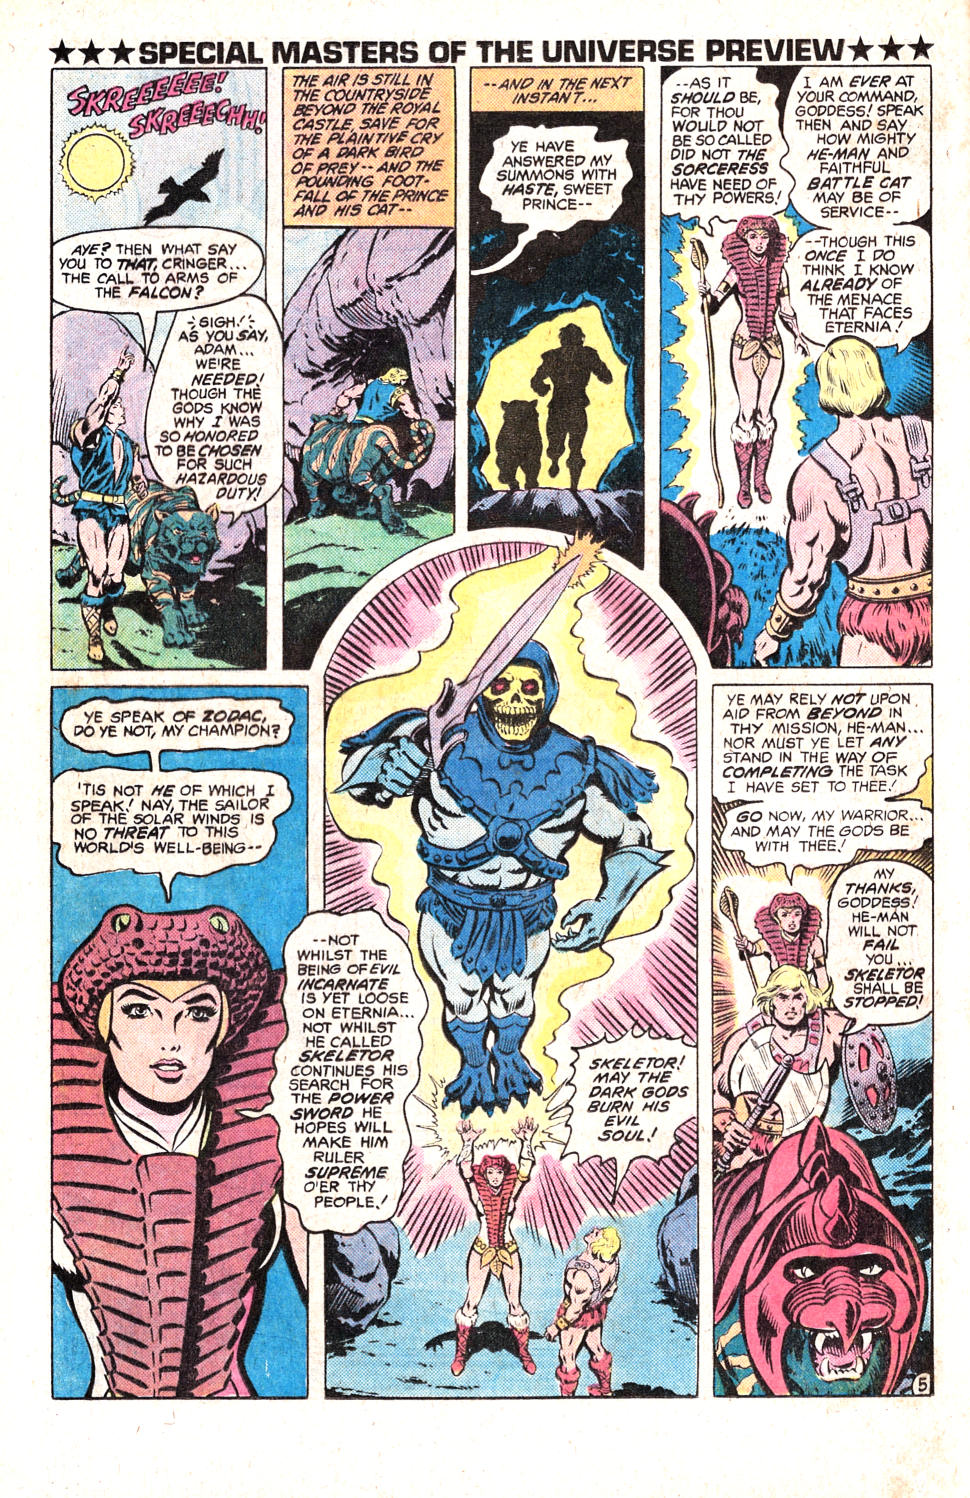 Read online All-Star Squadron comic -  Issue #15 - 23